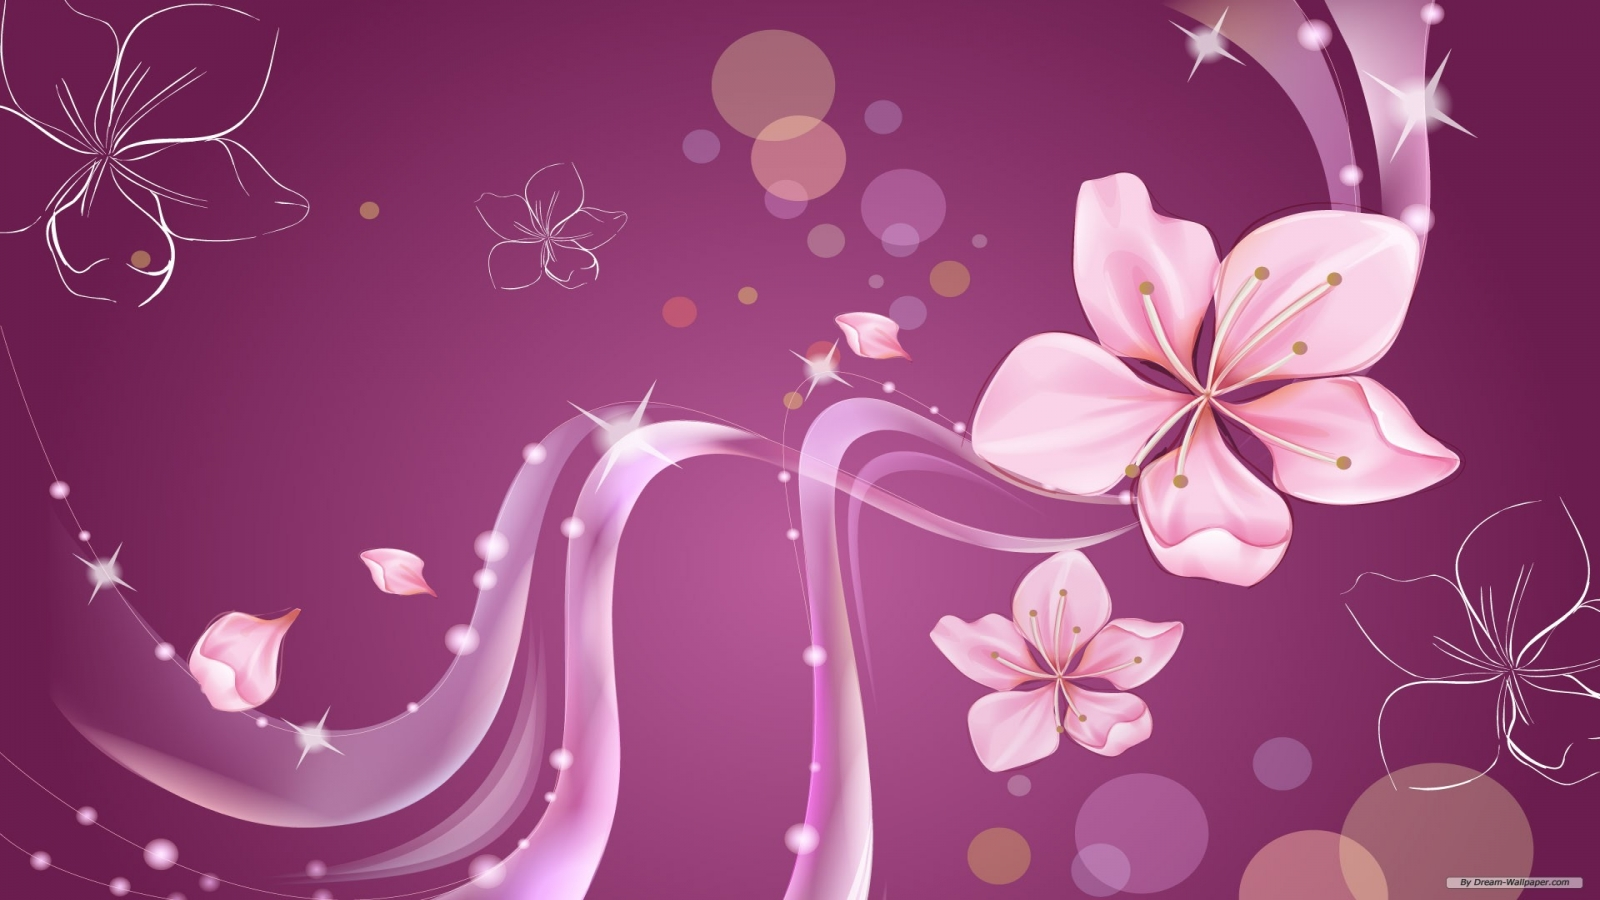 Flower background images free download vector black and white library background images free download vector black and white library